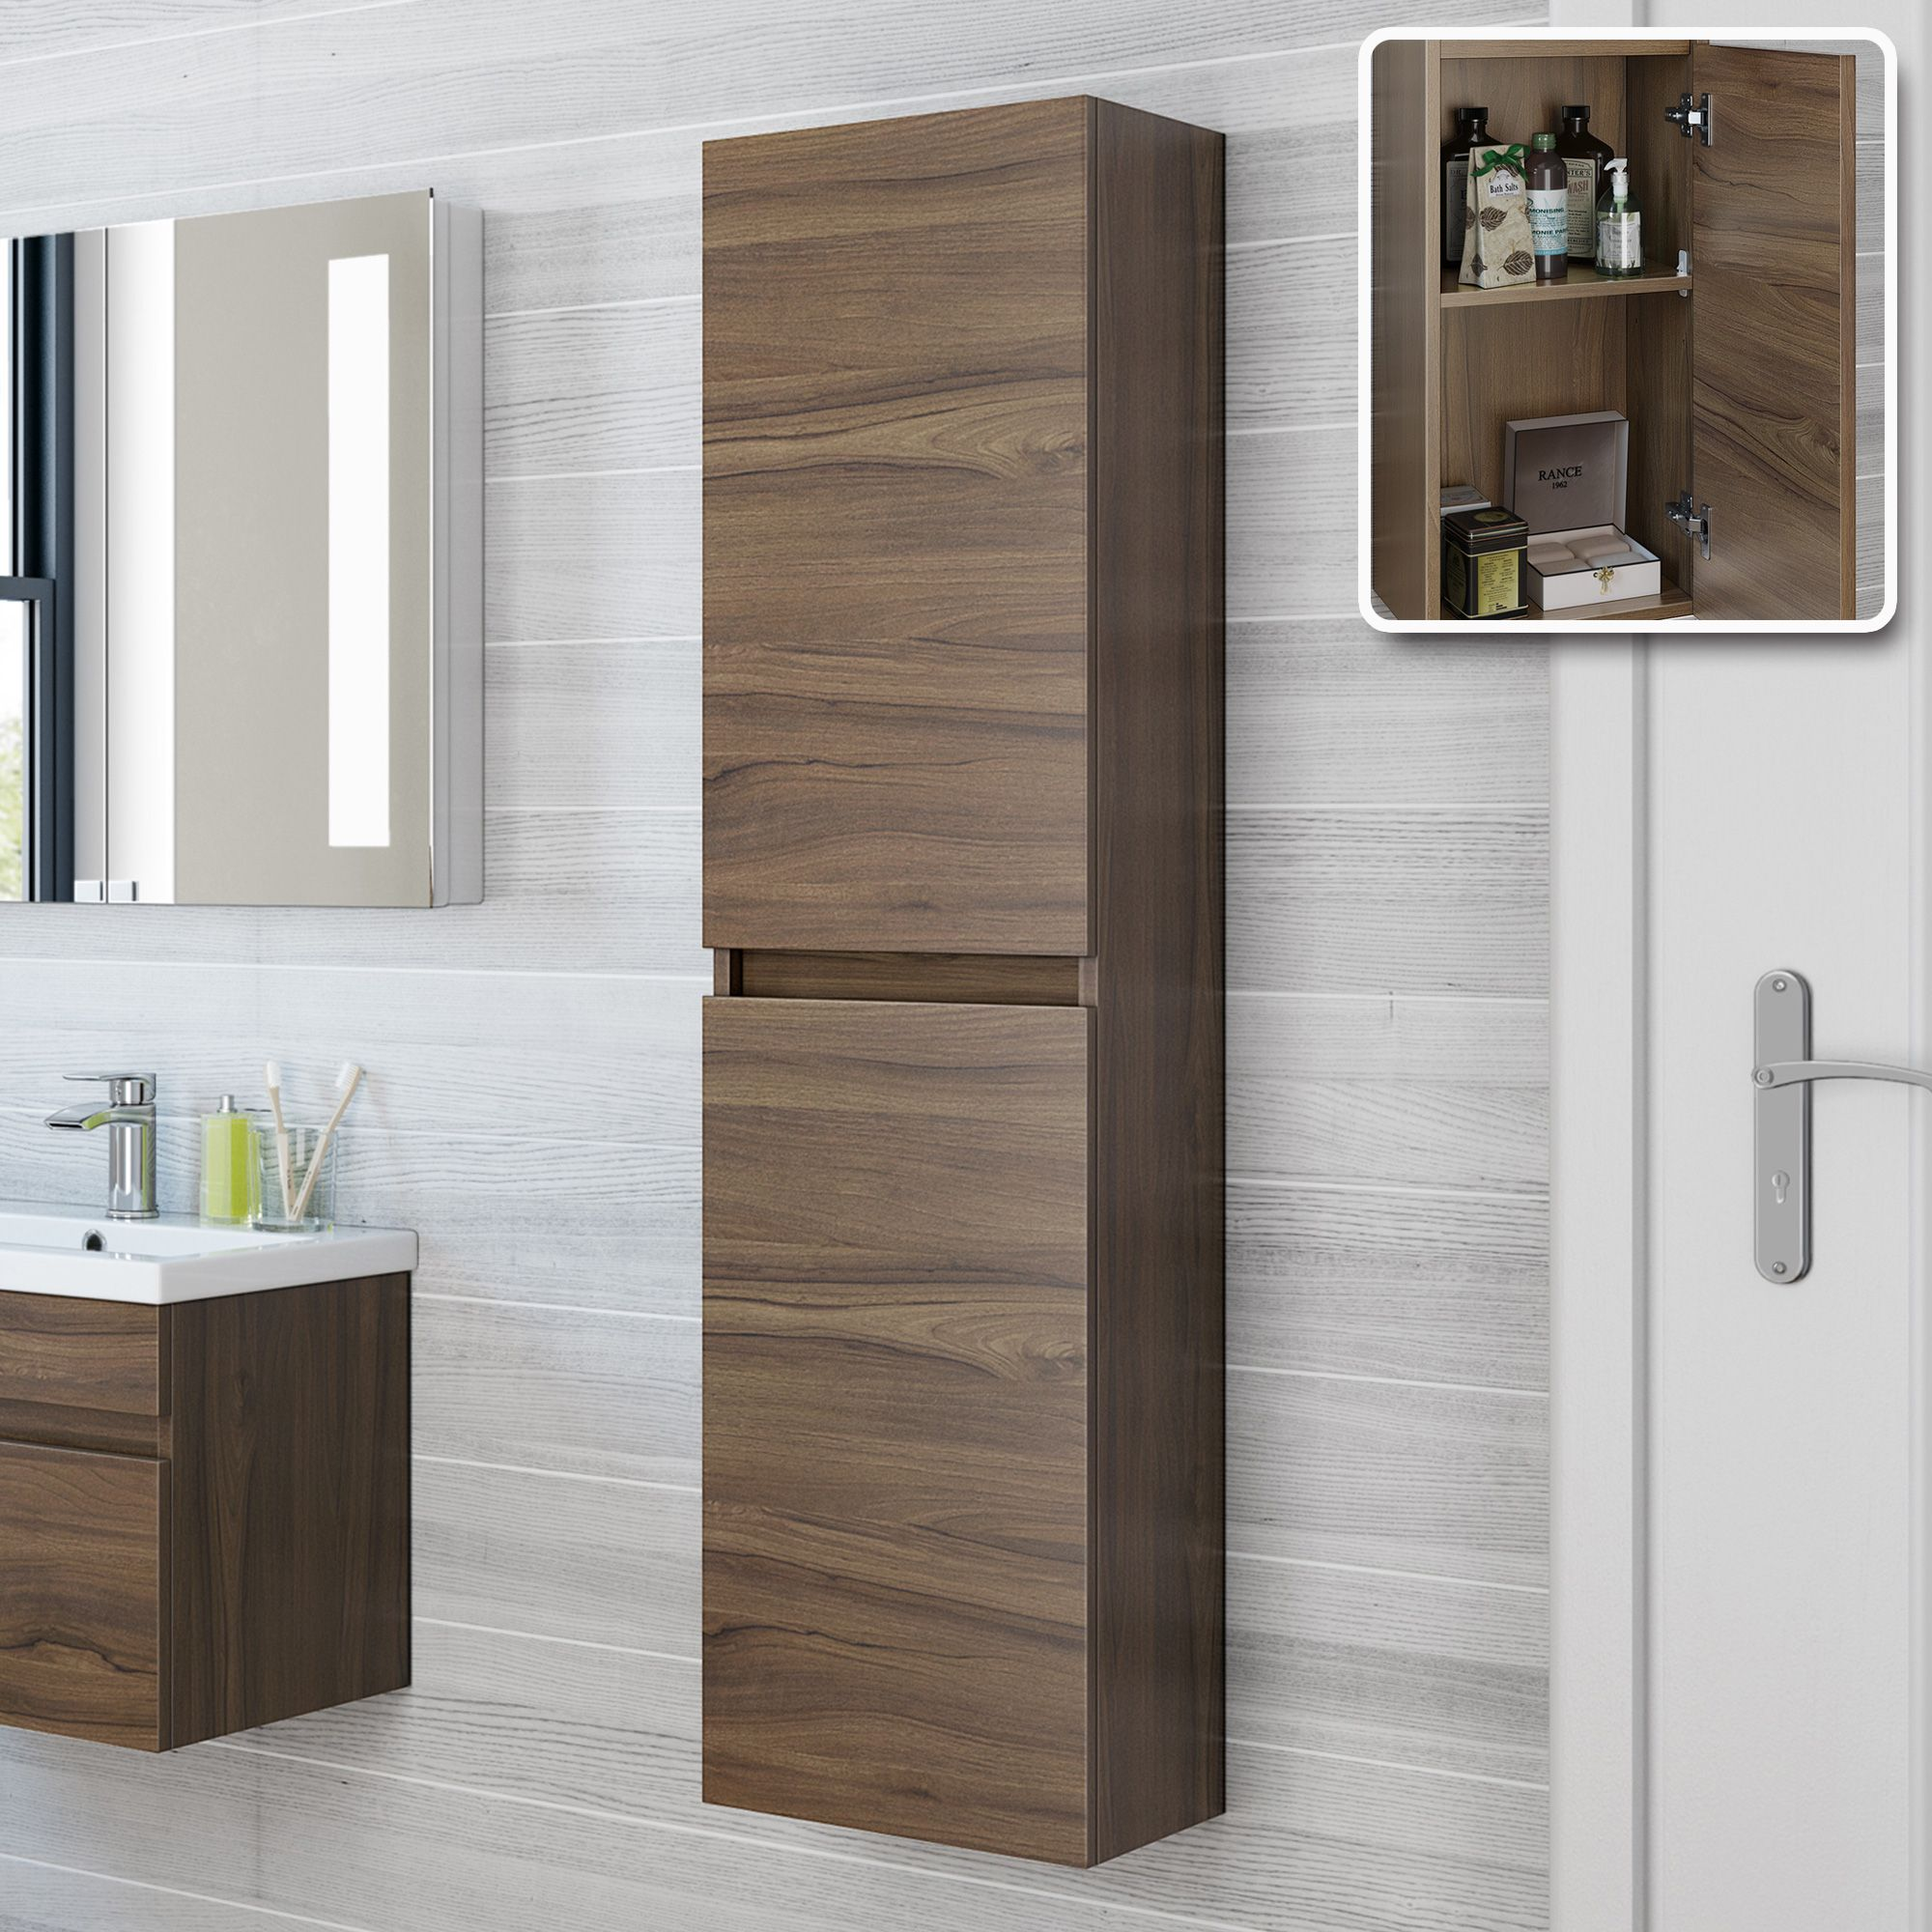 bathroom for storage of image optimizing modern decor ideas home cabinet